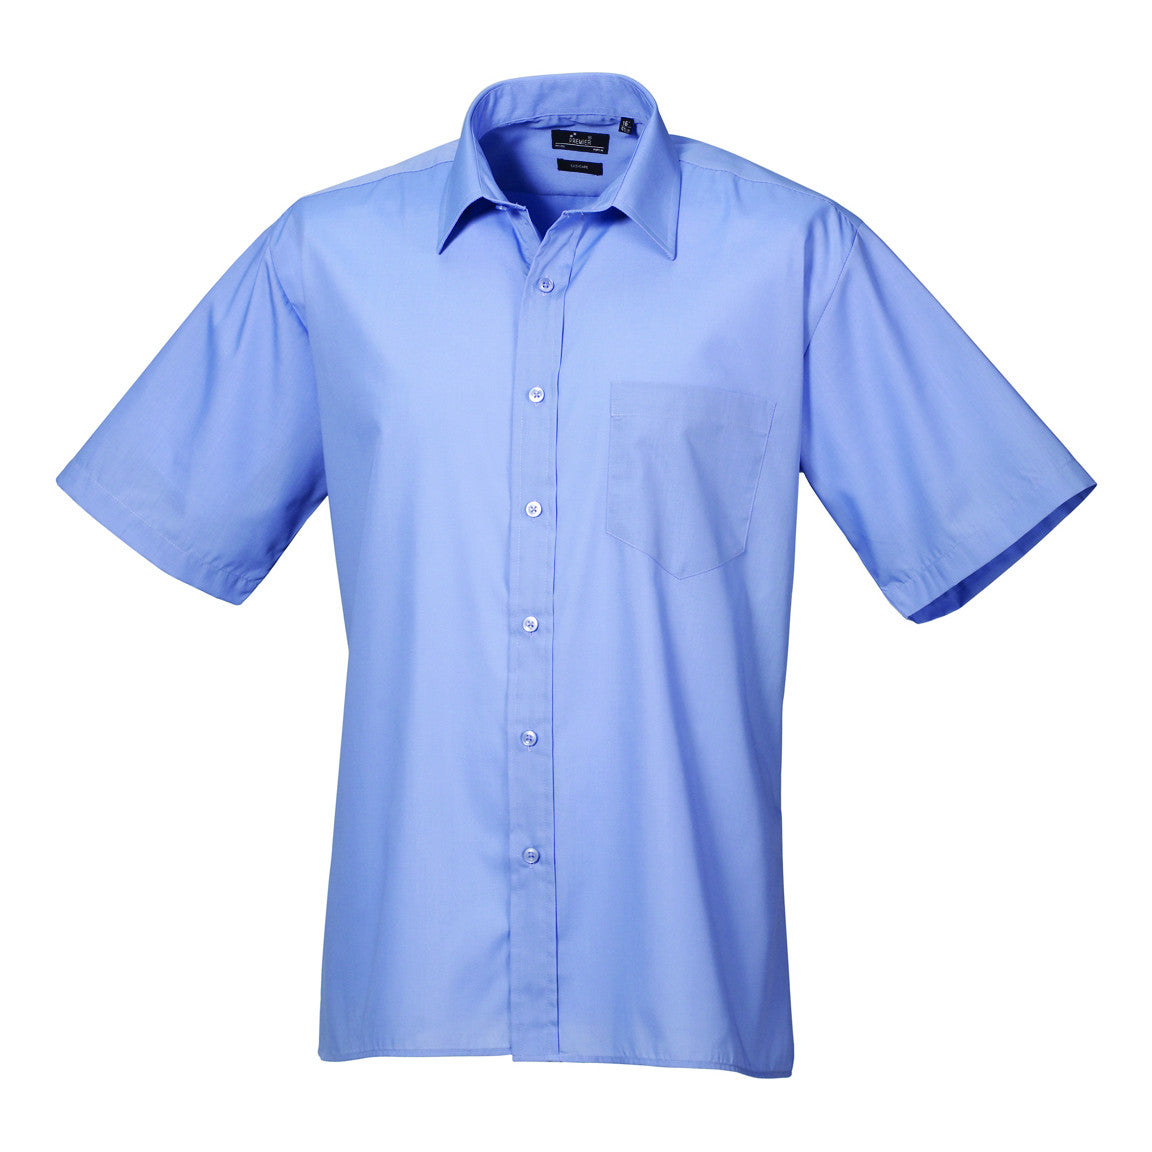 Premier Poplin Shirts (Sapphire, Turquoise, Light Blue, Mid Blue, Royal) - peterdrew.com  - 3